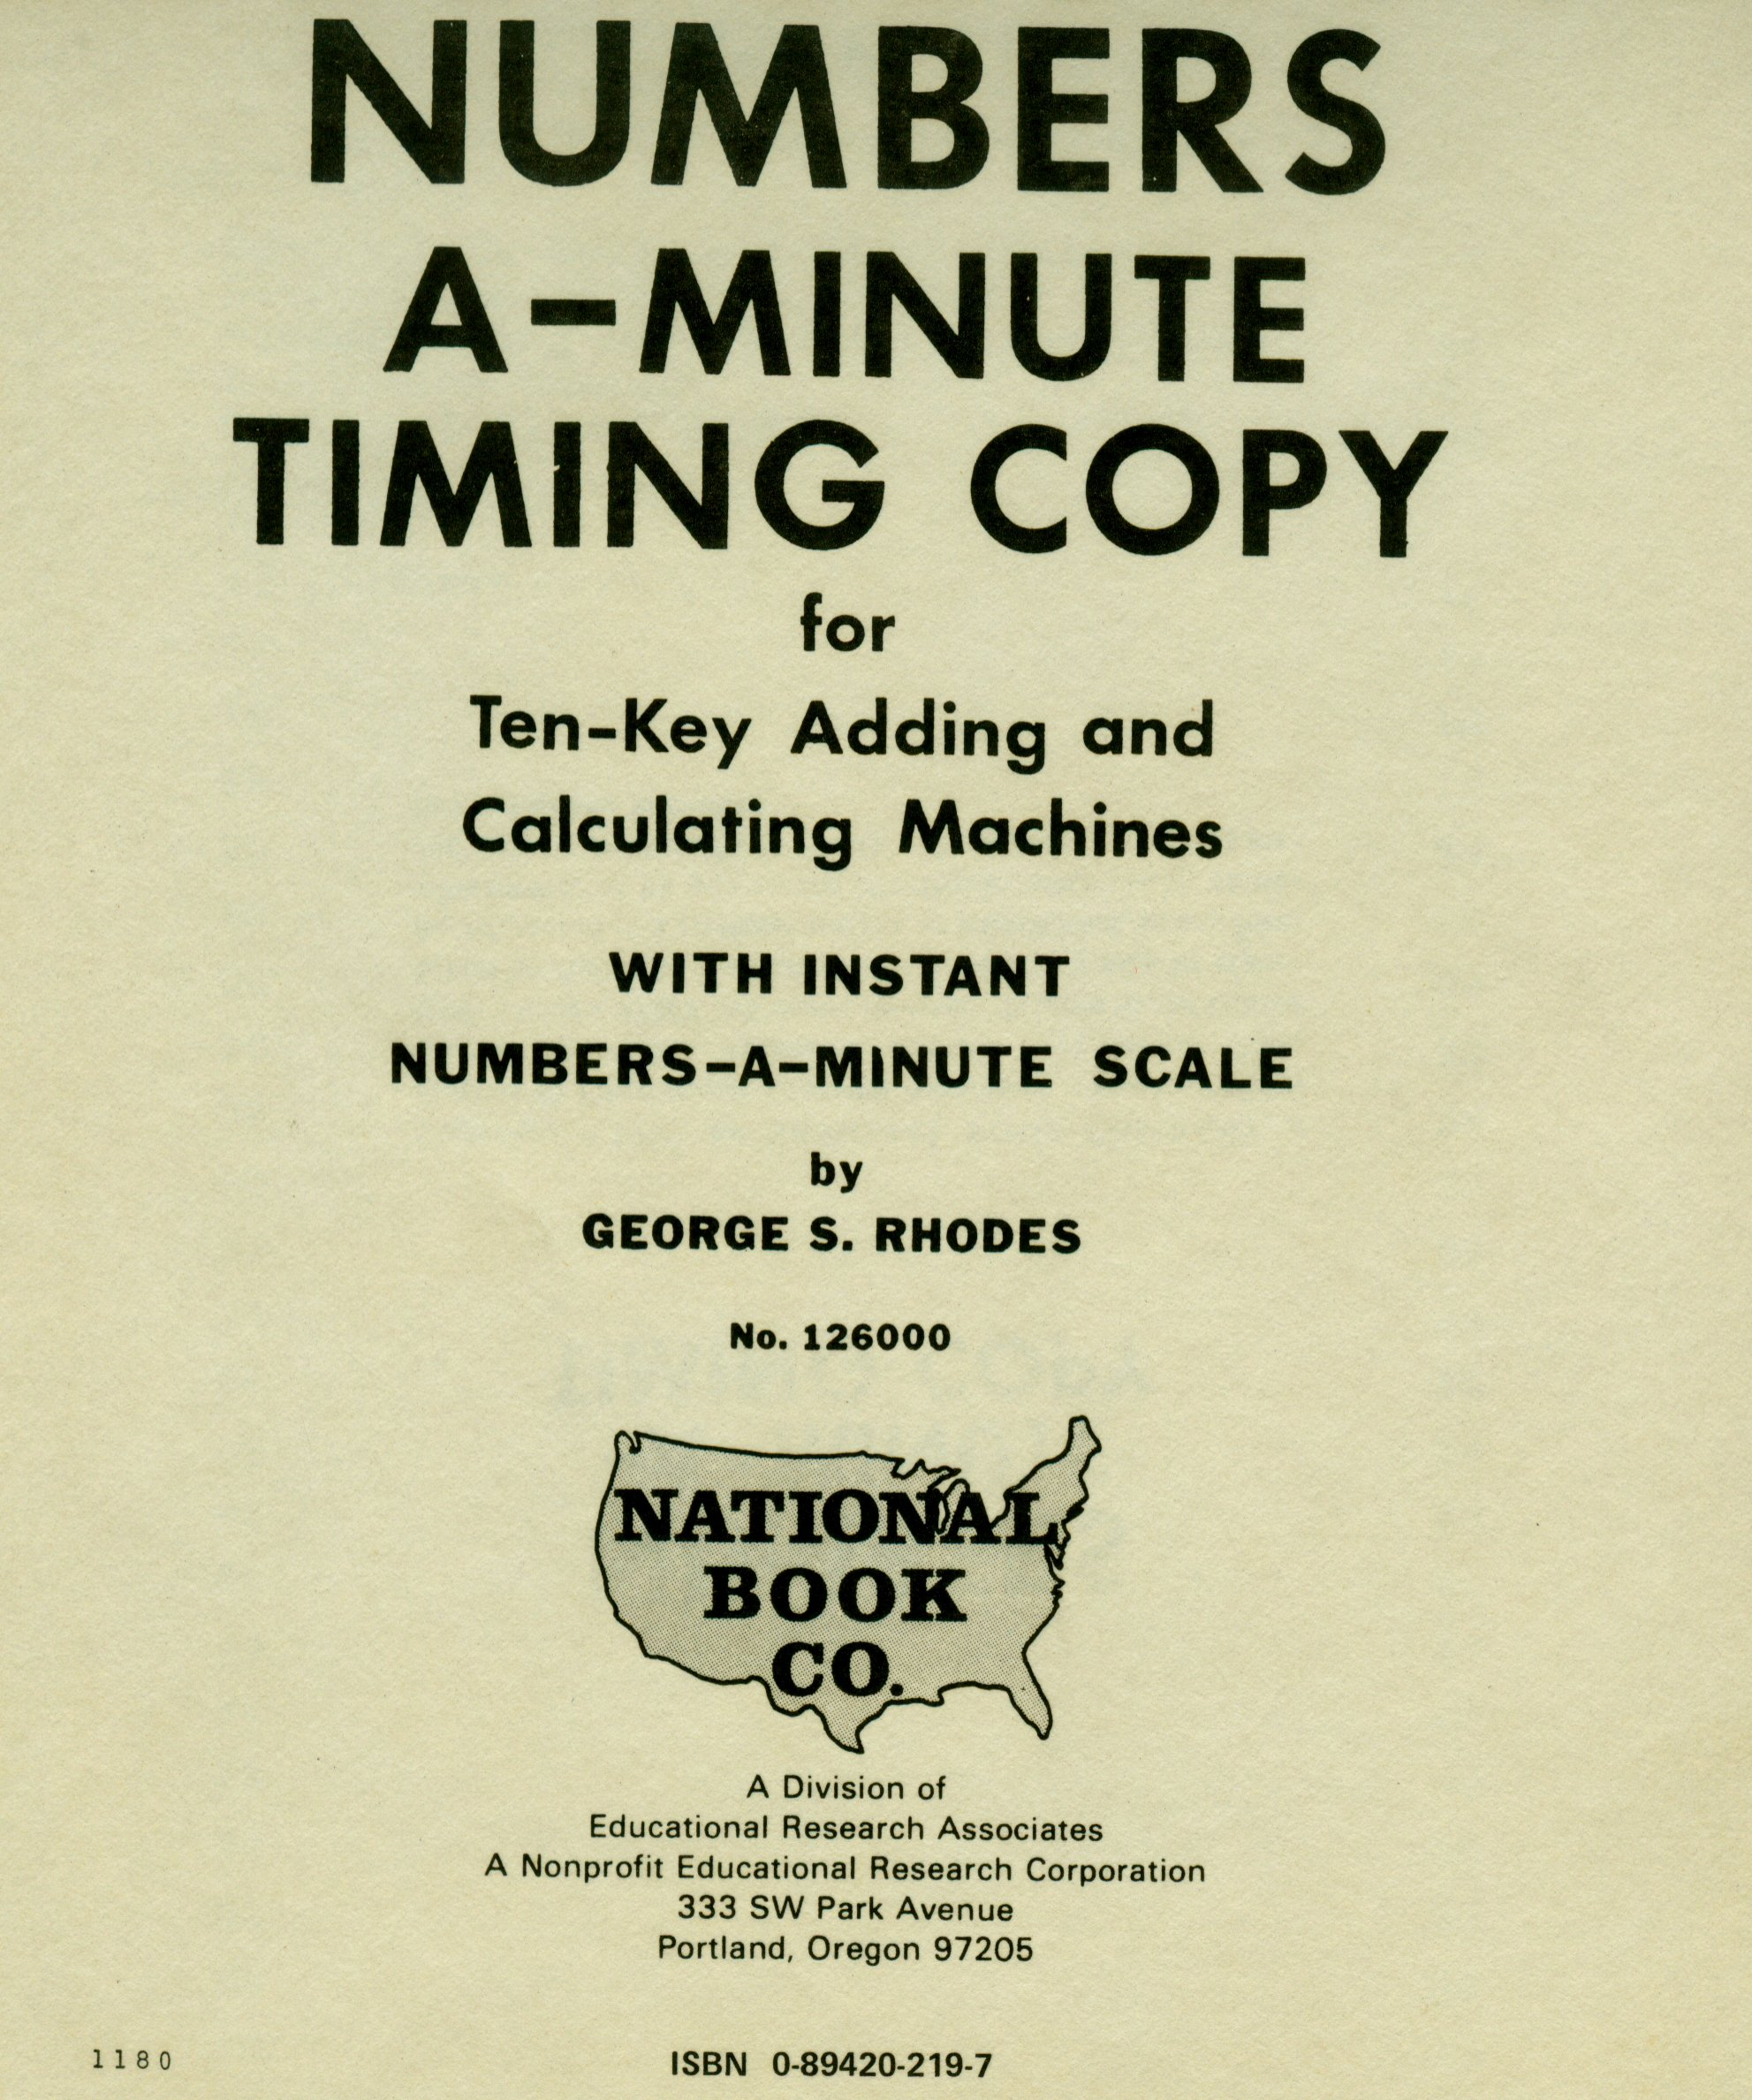 3-Minute Timings for Typing